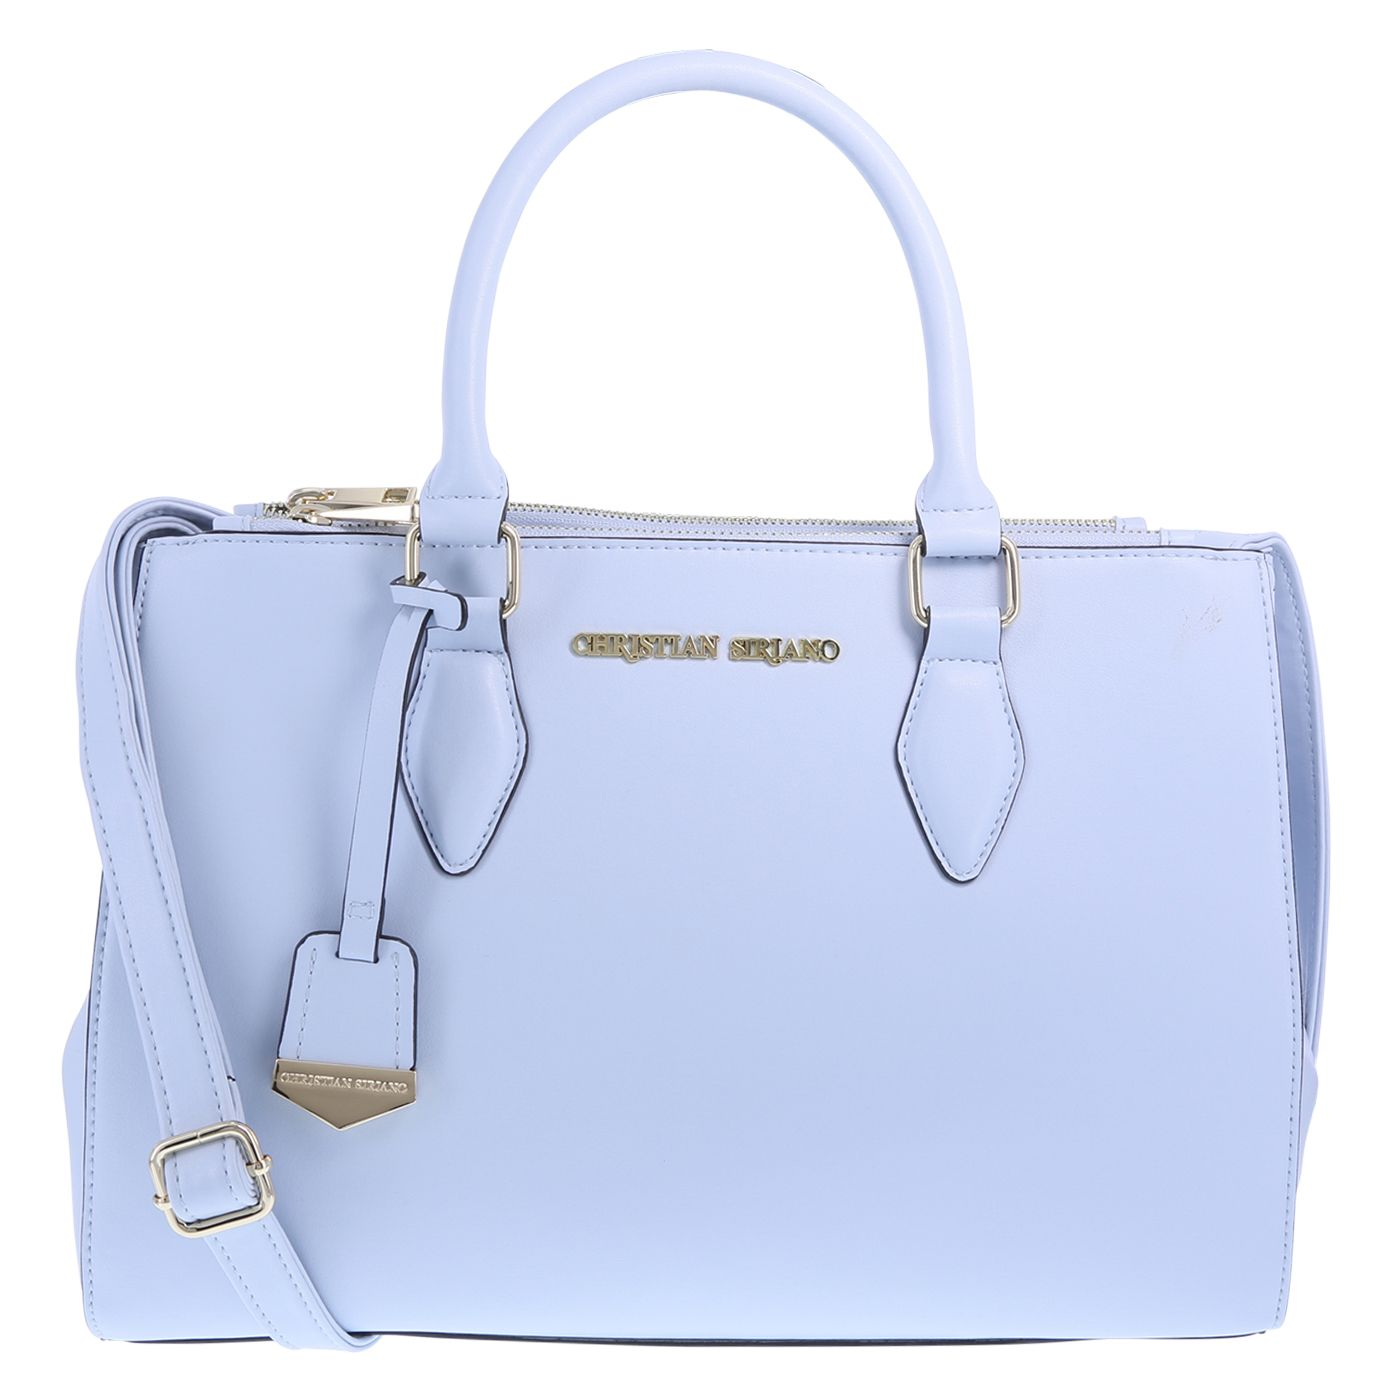 Christian Siriano for Payless satchel in pastel blue for spring ... e58f1eee7d2c